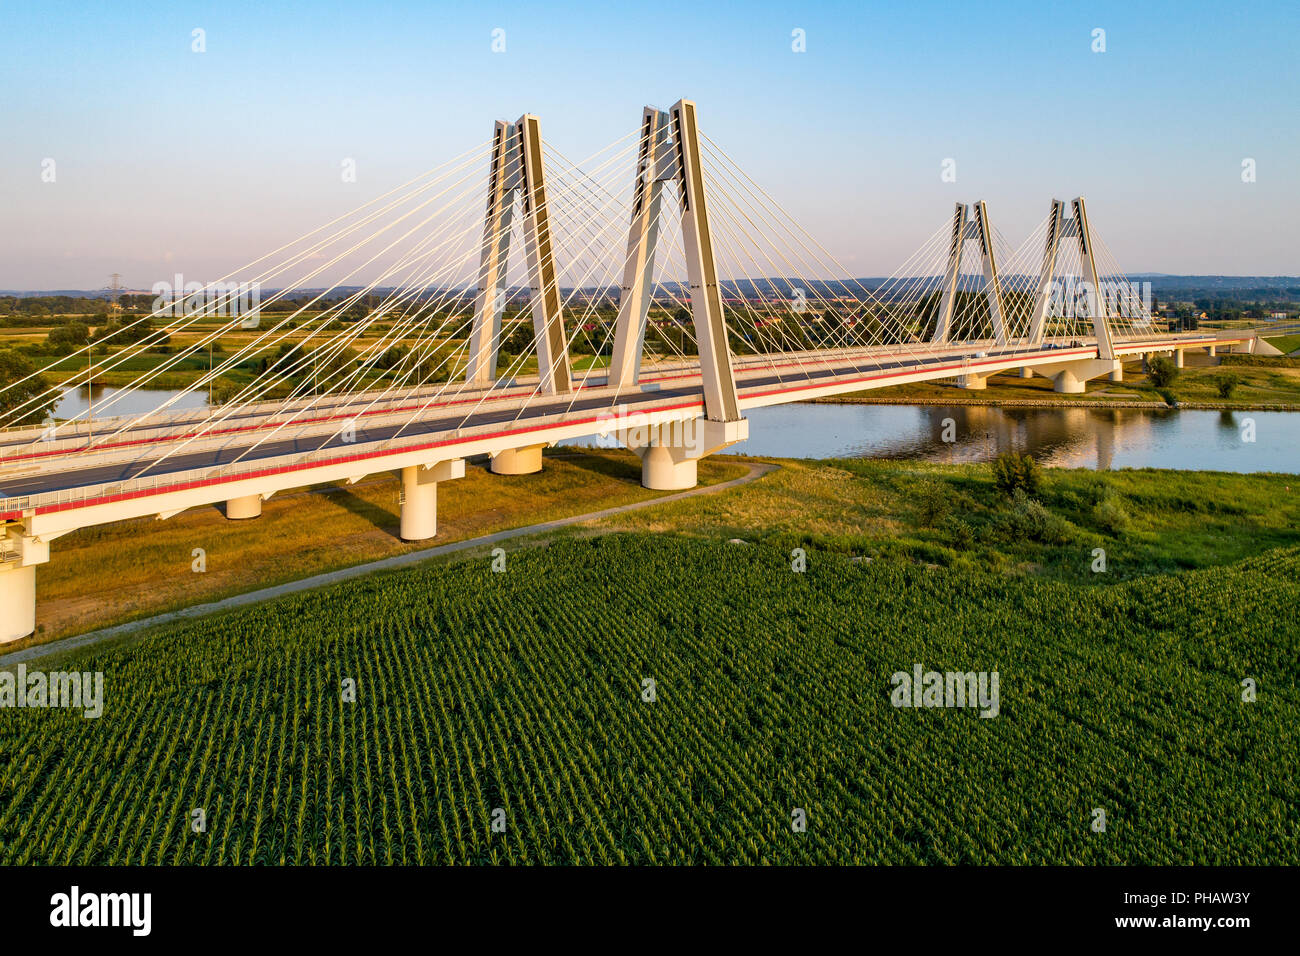 New modern double cable-stayed bridge over Vistula River in Krakow, Poland. Part of the ring motorway around Krakow under construction. Aerial view at Stock Photo